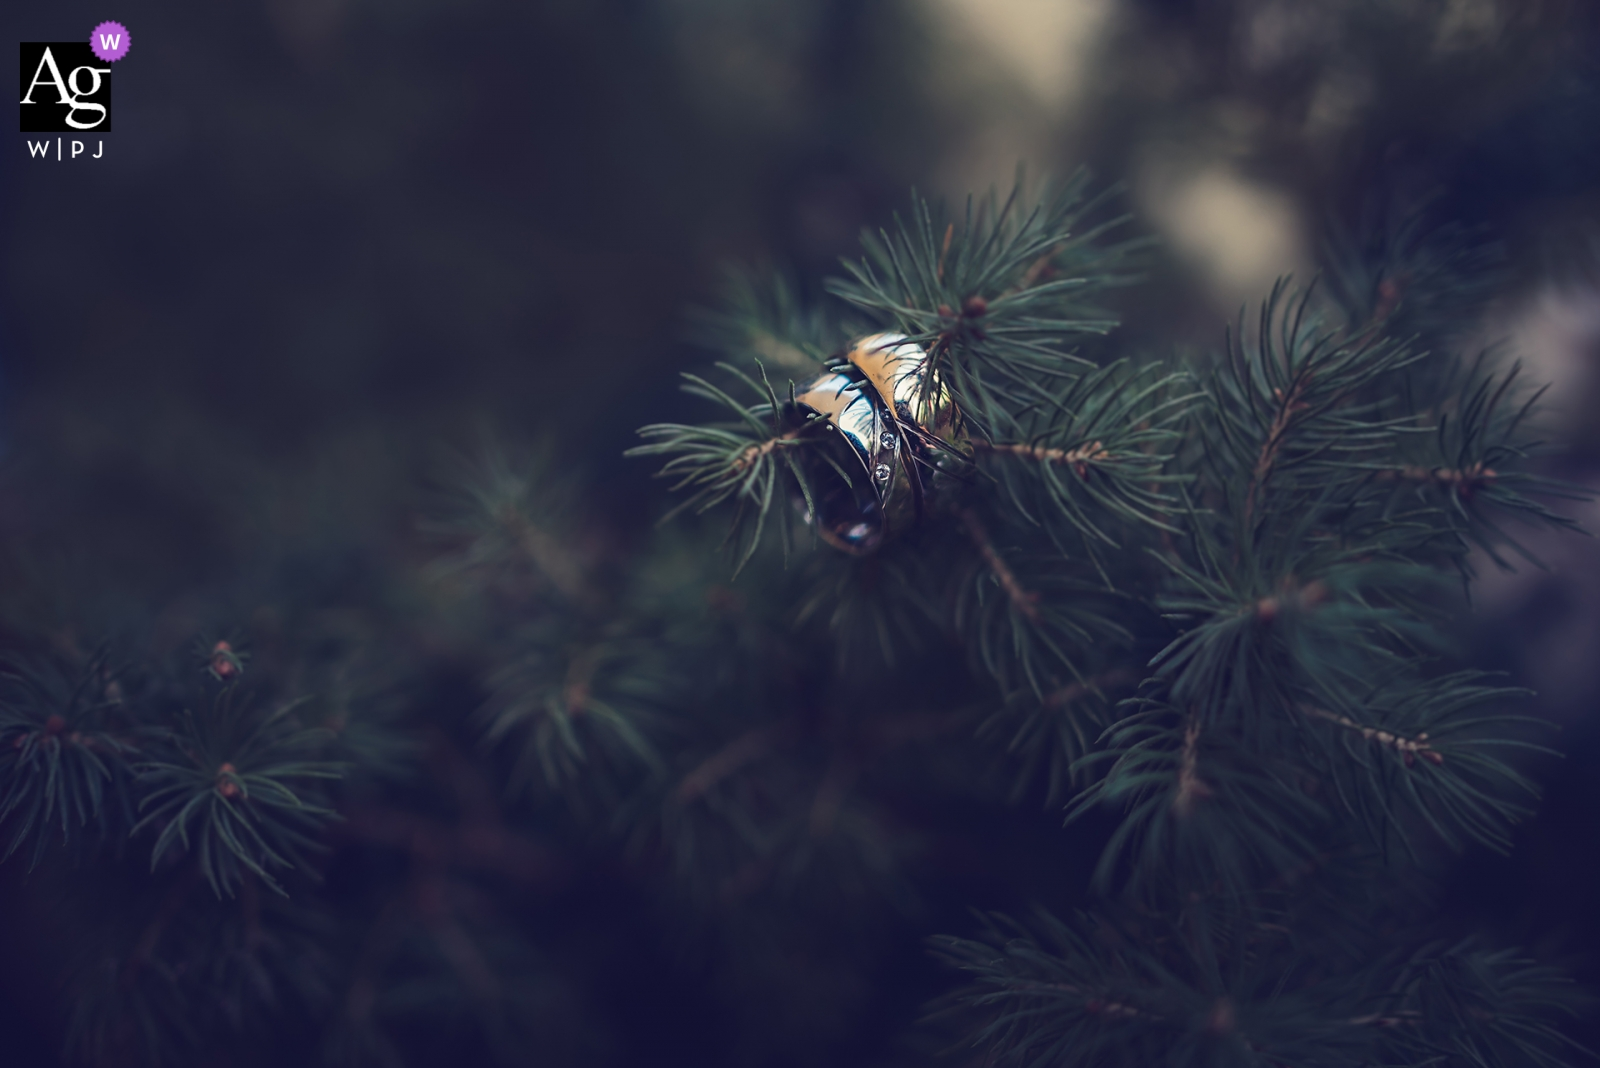 Bulgaria bride details of the rings in a tree | Infinity fine art wedding photography